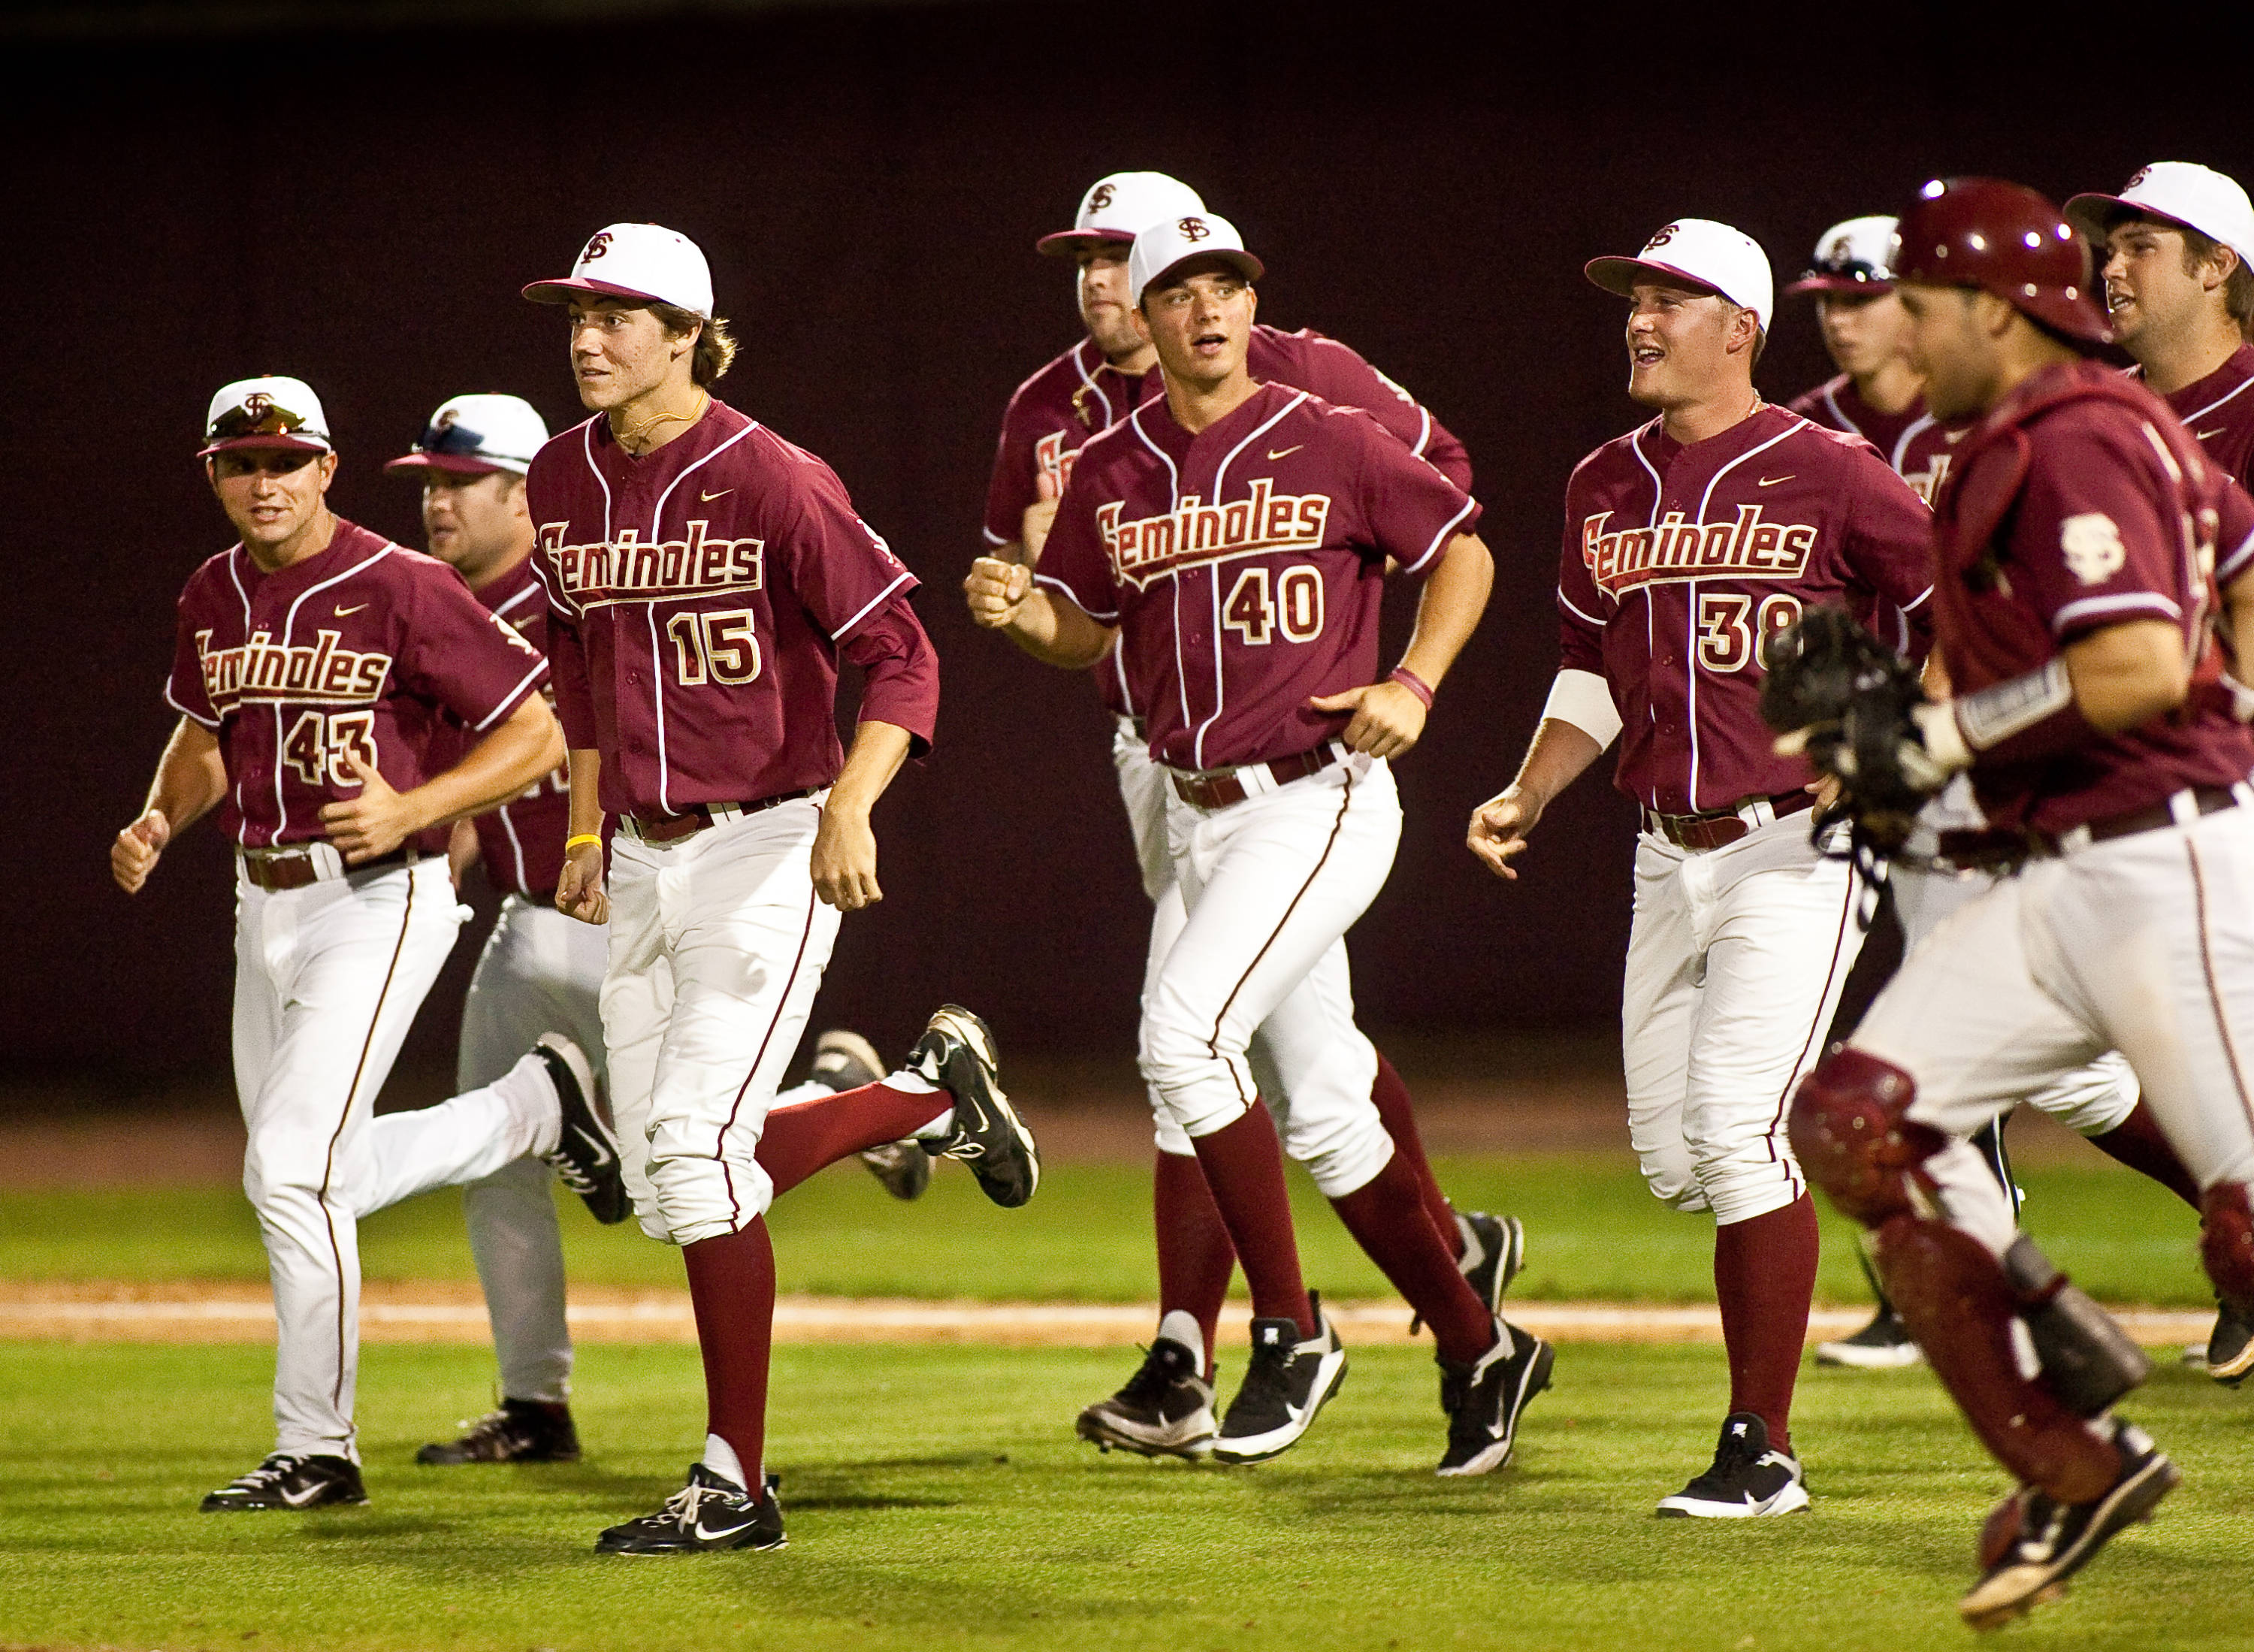 Seminoles are jubilant after defeating the gators for the third time in 2011